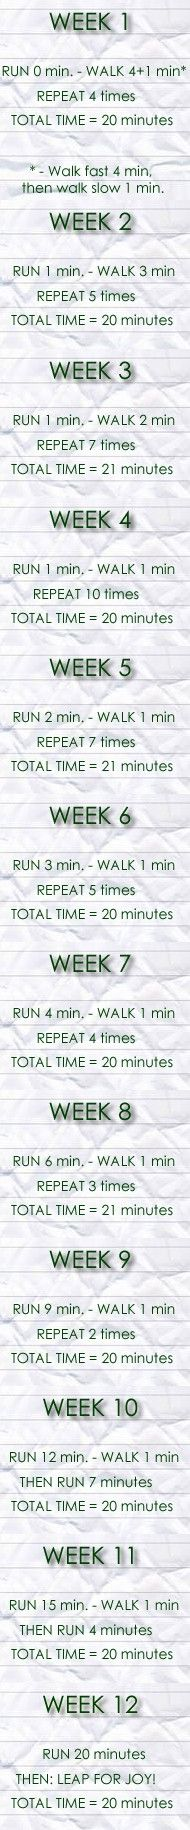 Before I always threw myself into running and I haven't been sticking to it. Maybe this will help.